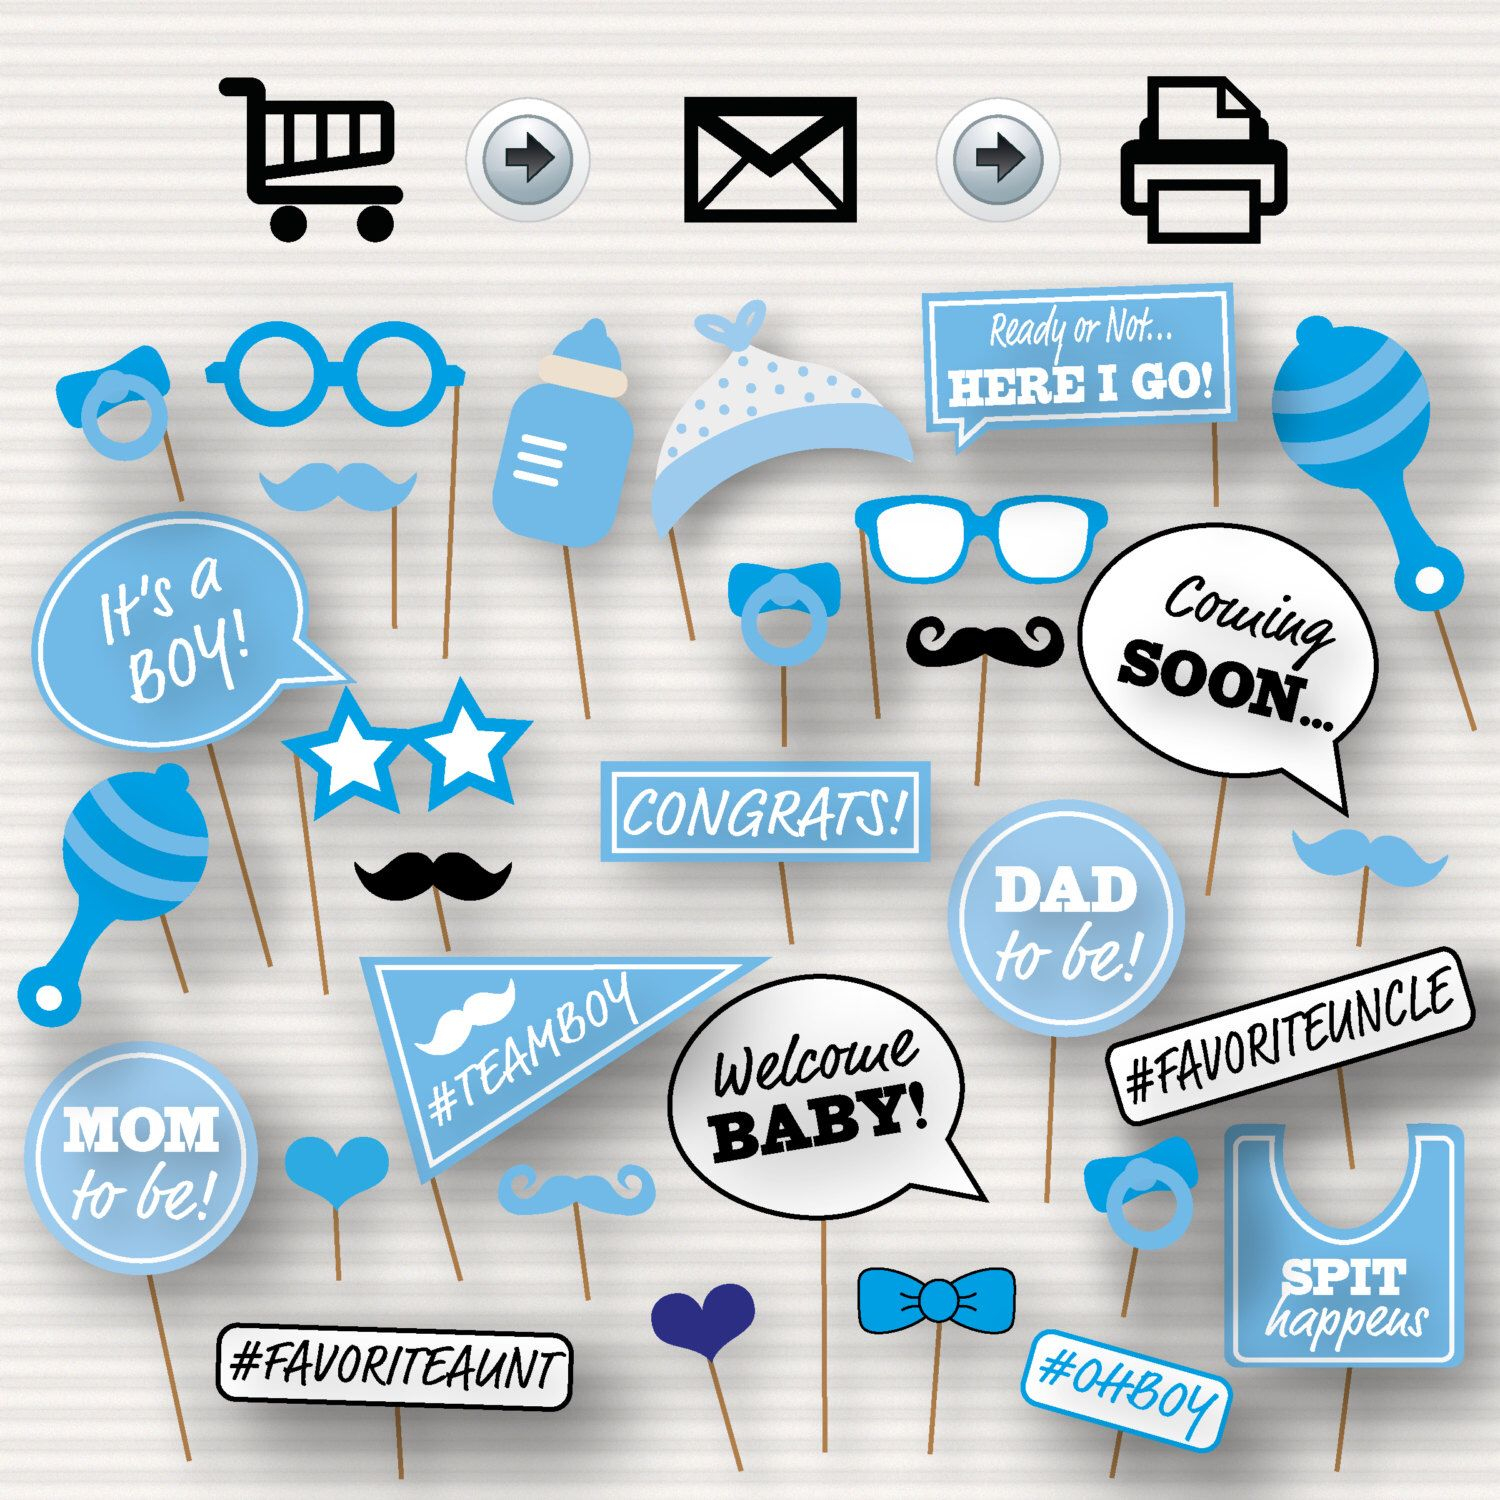 Baby Shower Printable Photo Booth Props - Baby Shower Photobooth - Free Printable Boy Baby Shower Photo Booth Props